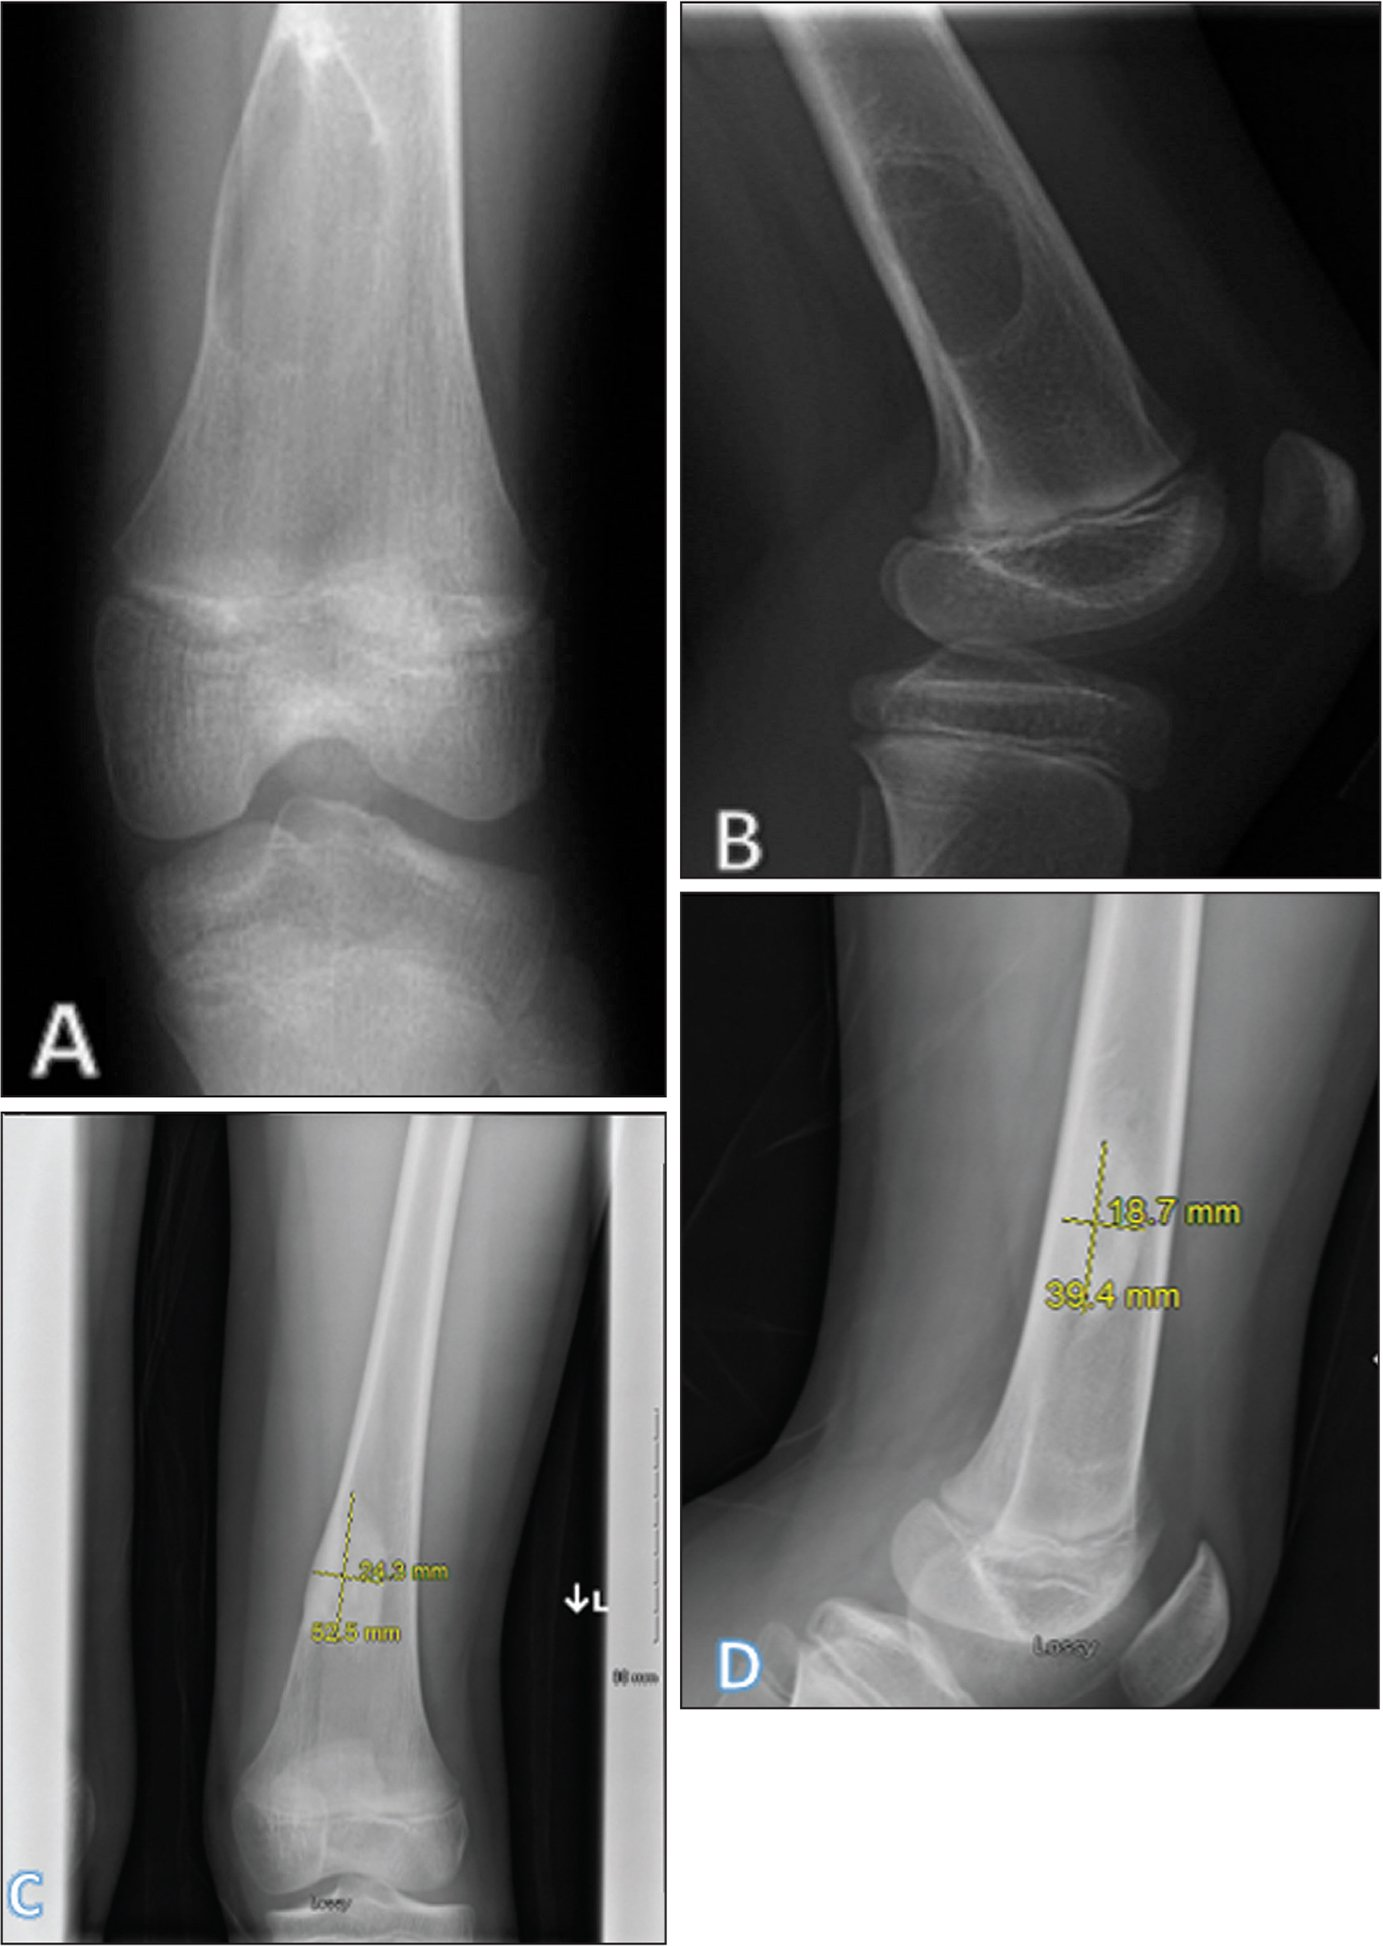 Preoperative anteroposterior (A) and lateral (B) radiographs of a distal femoral metaphyseal unicameral bone cyst. Ten months later, the anteroposterior (C) and lateral (D) radiographs of the lesion show no recurrence. Measures of the healed cyst consist of the maximum width and height.